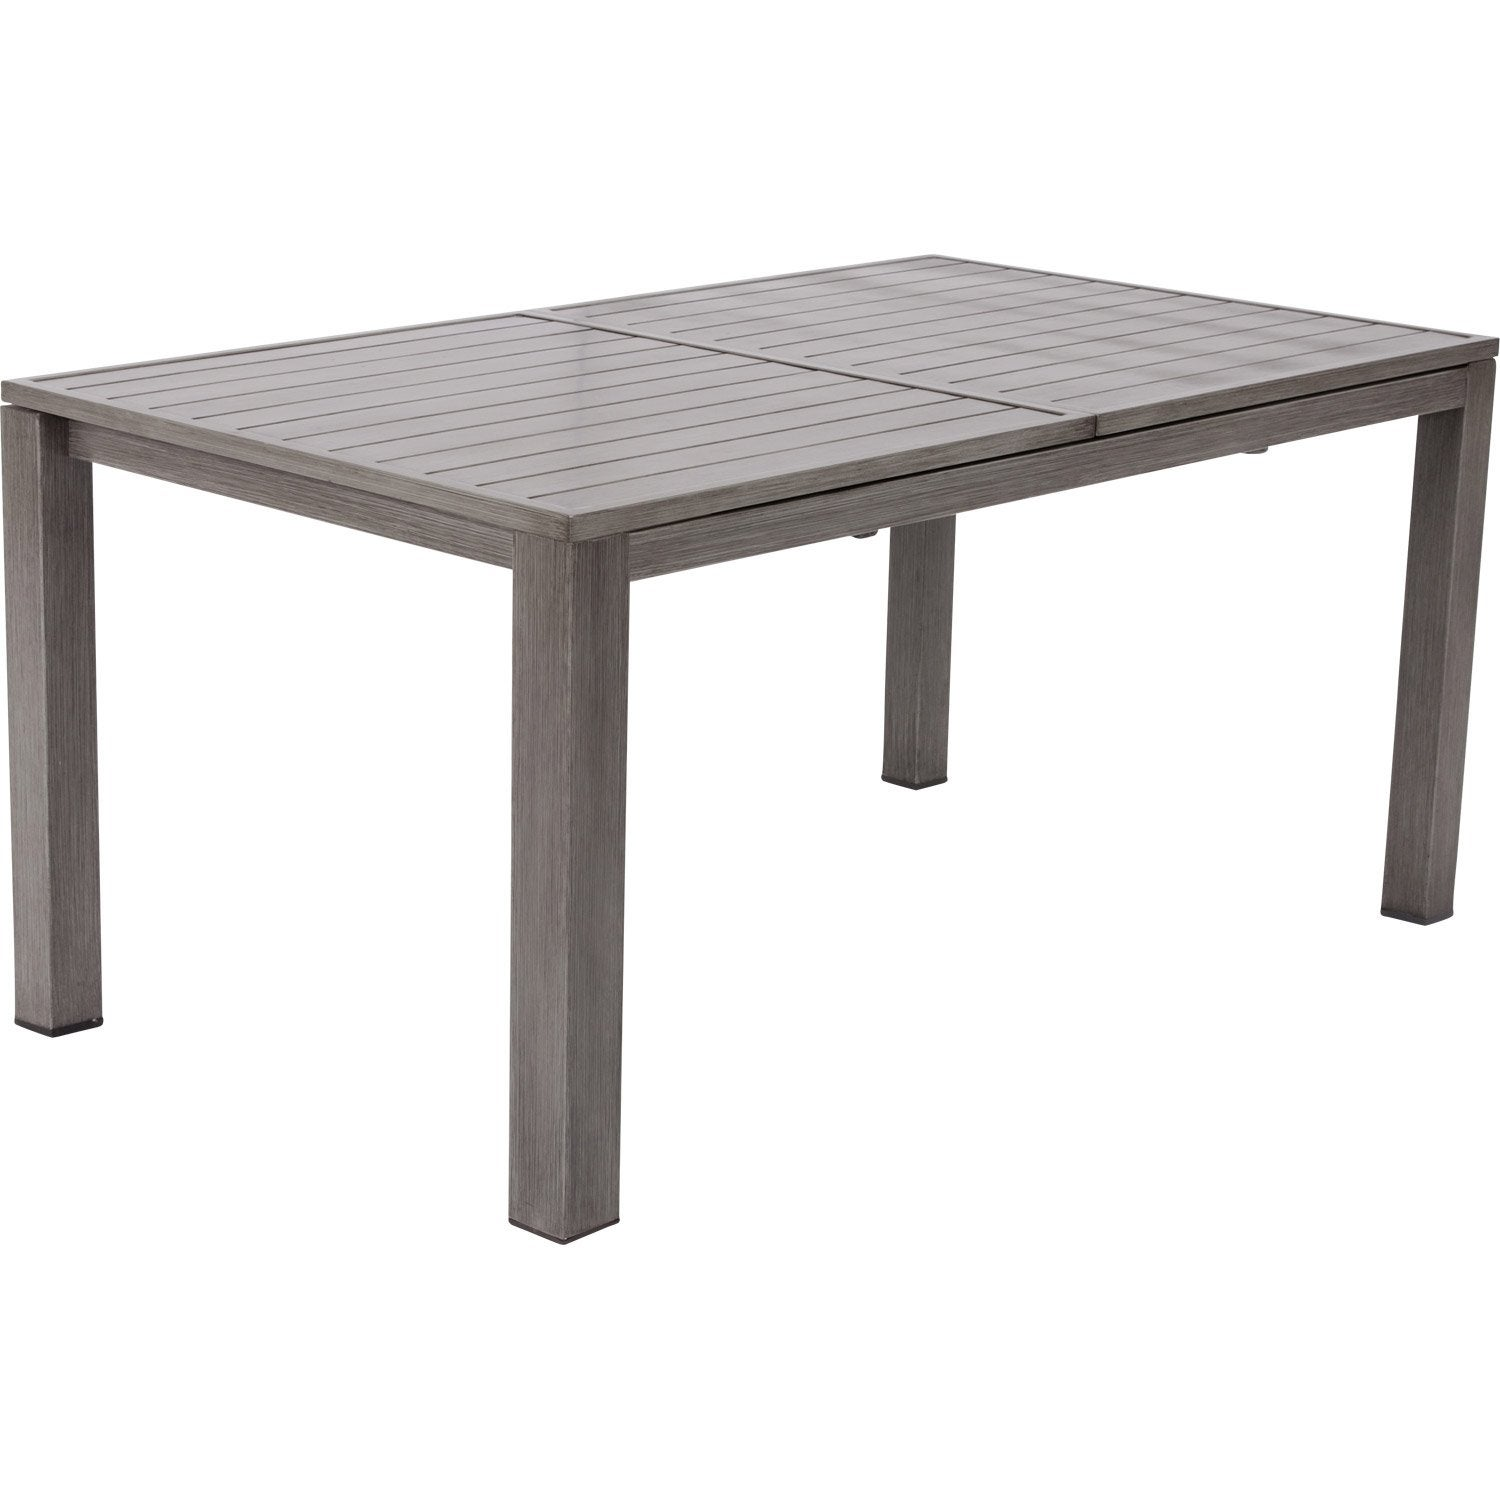 Table de jardin naterial antibes rectangulaire gris look for Leroy merlin table jardin